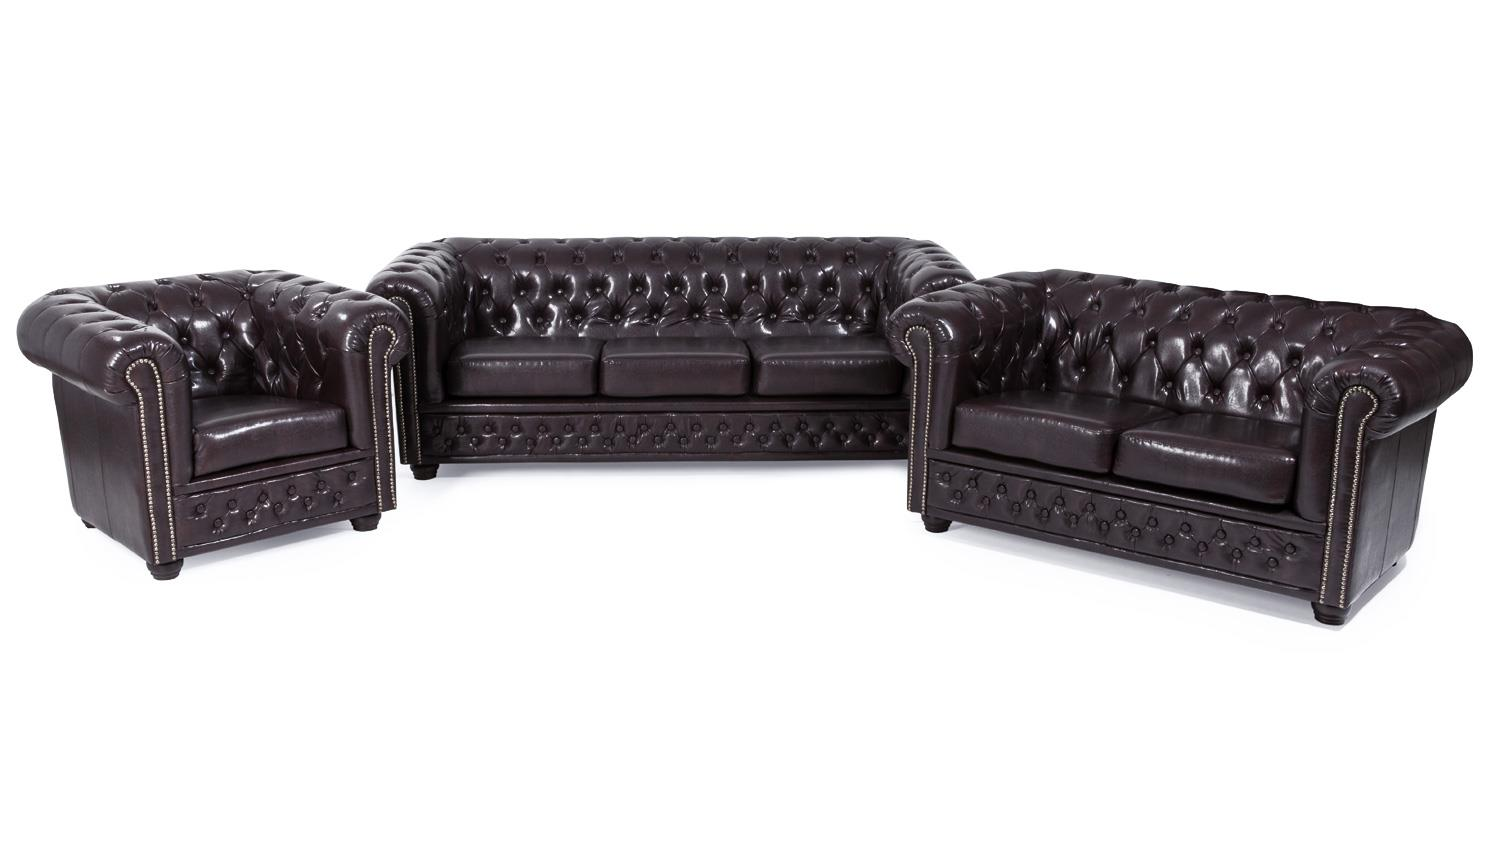 Polstergarnituren 3 2 1 Sitzer Garnitur 3-2-1 Sheffield Sessel 2 & 3 Sitzer Sofa Lederlook